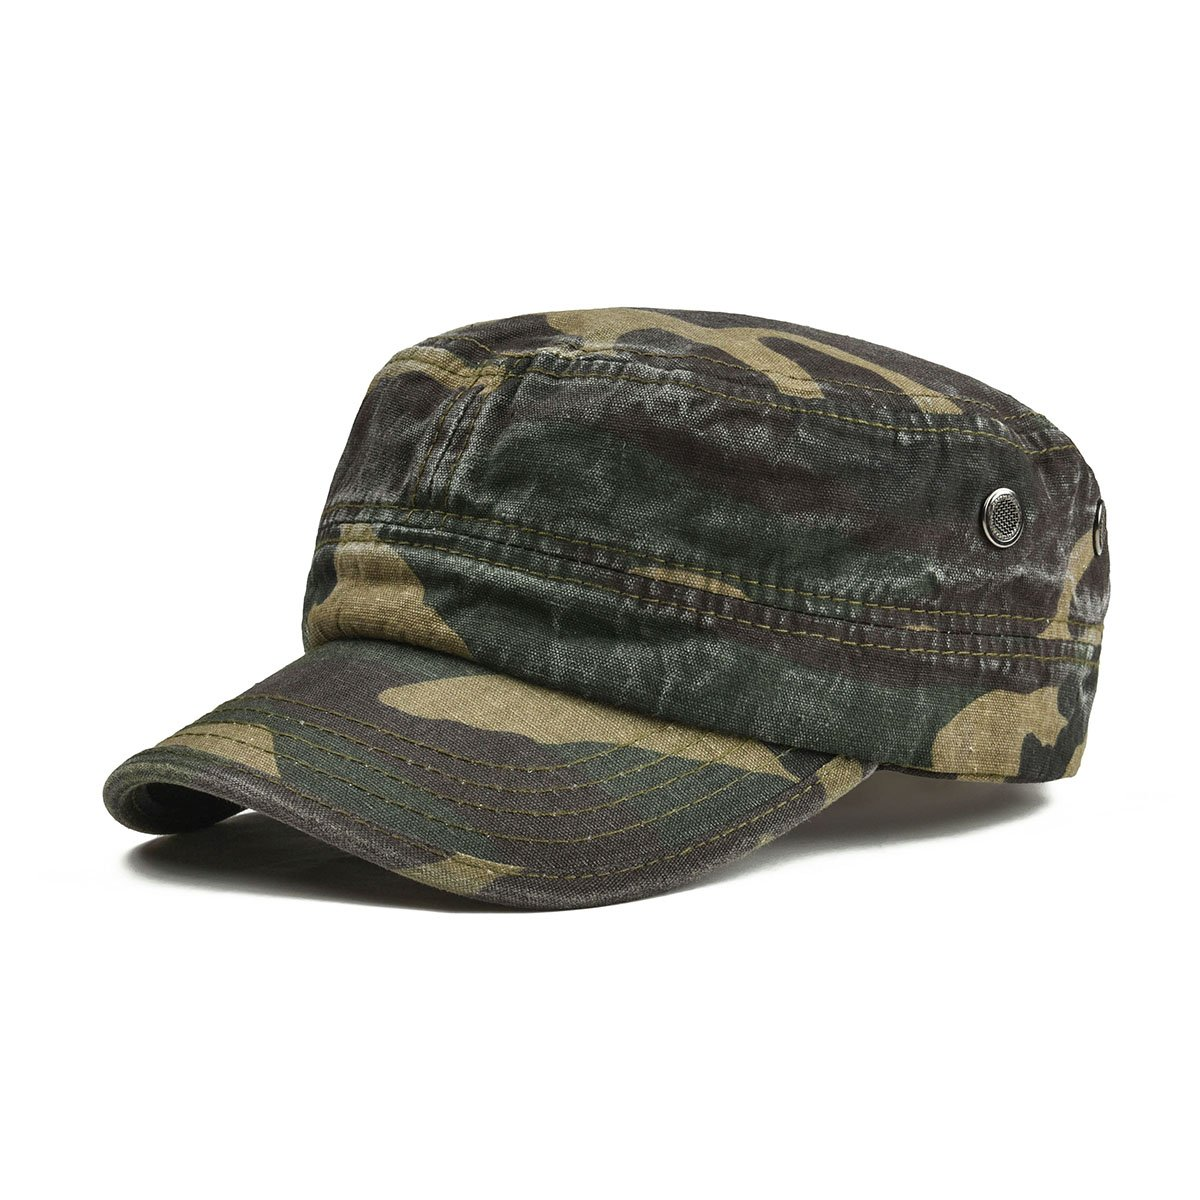 83d66ef8a2b46c VOBOOM Washed Cotton Military Caps Cadet Army Caps Unique Design Vintage  Flat Top Cap (Green Camouflage): Amazon.ca: Clothing & Accessories